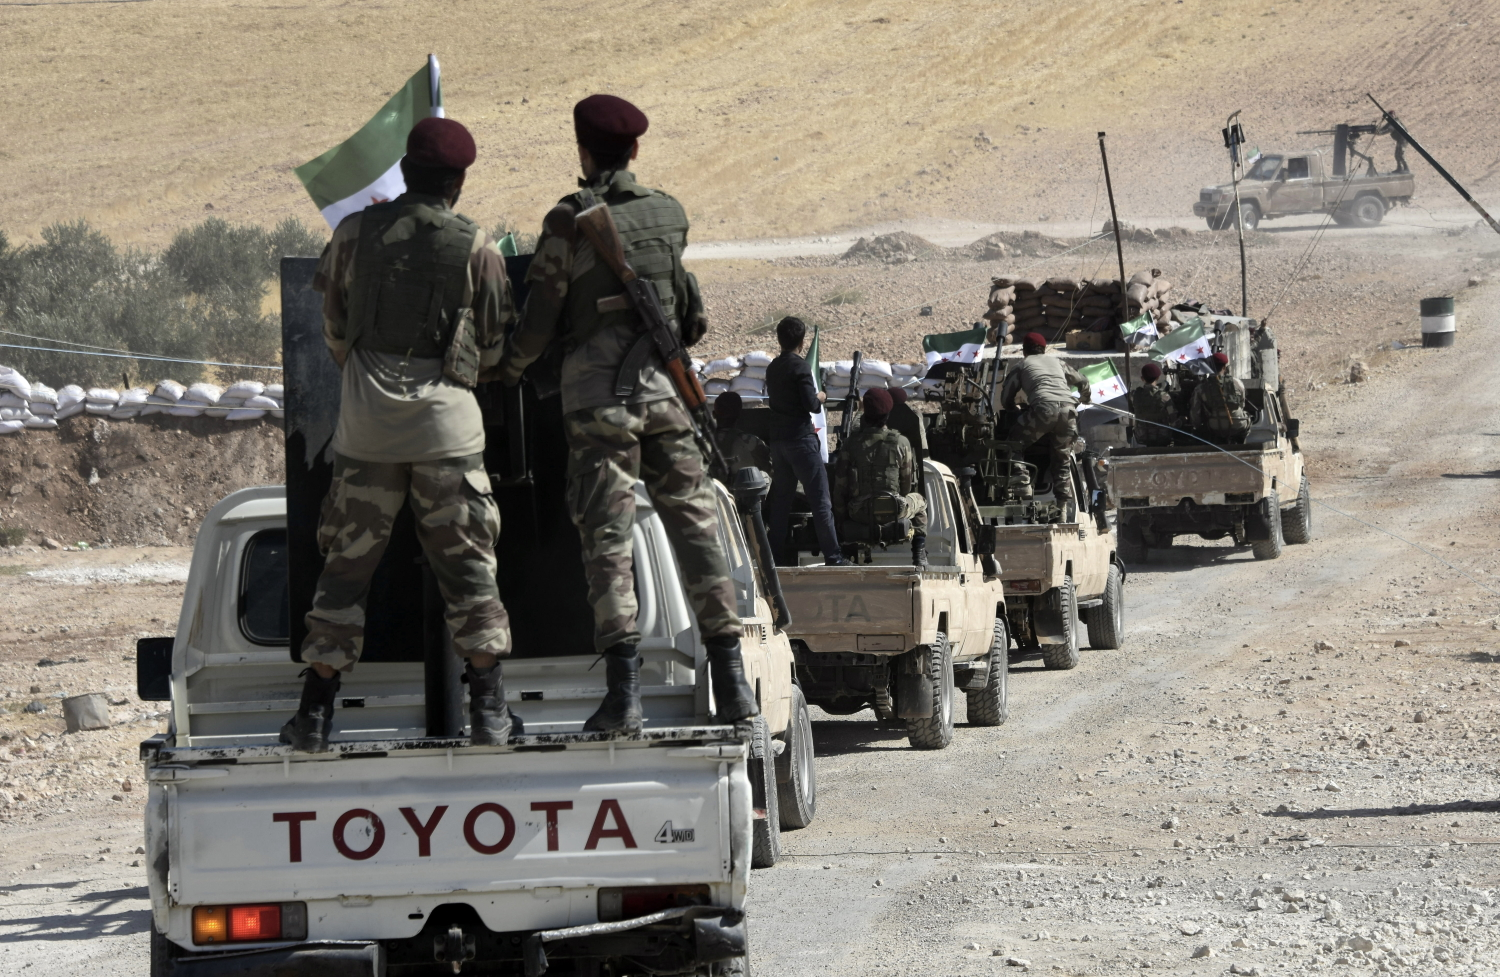 Turkey-backed FSA fighters are heading toward Syrian town of Tal Abyad from Turkish border town of Akcakale, Turkey, Thursday, Oct. 10, 2019. Turkish President Recep Tayyip Erdogan says that there have been 109